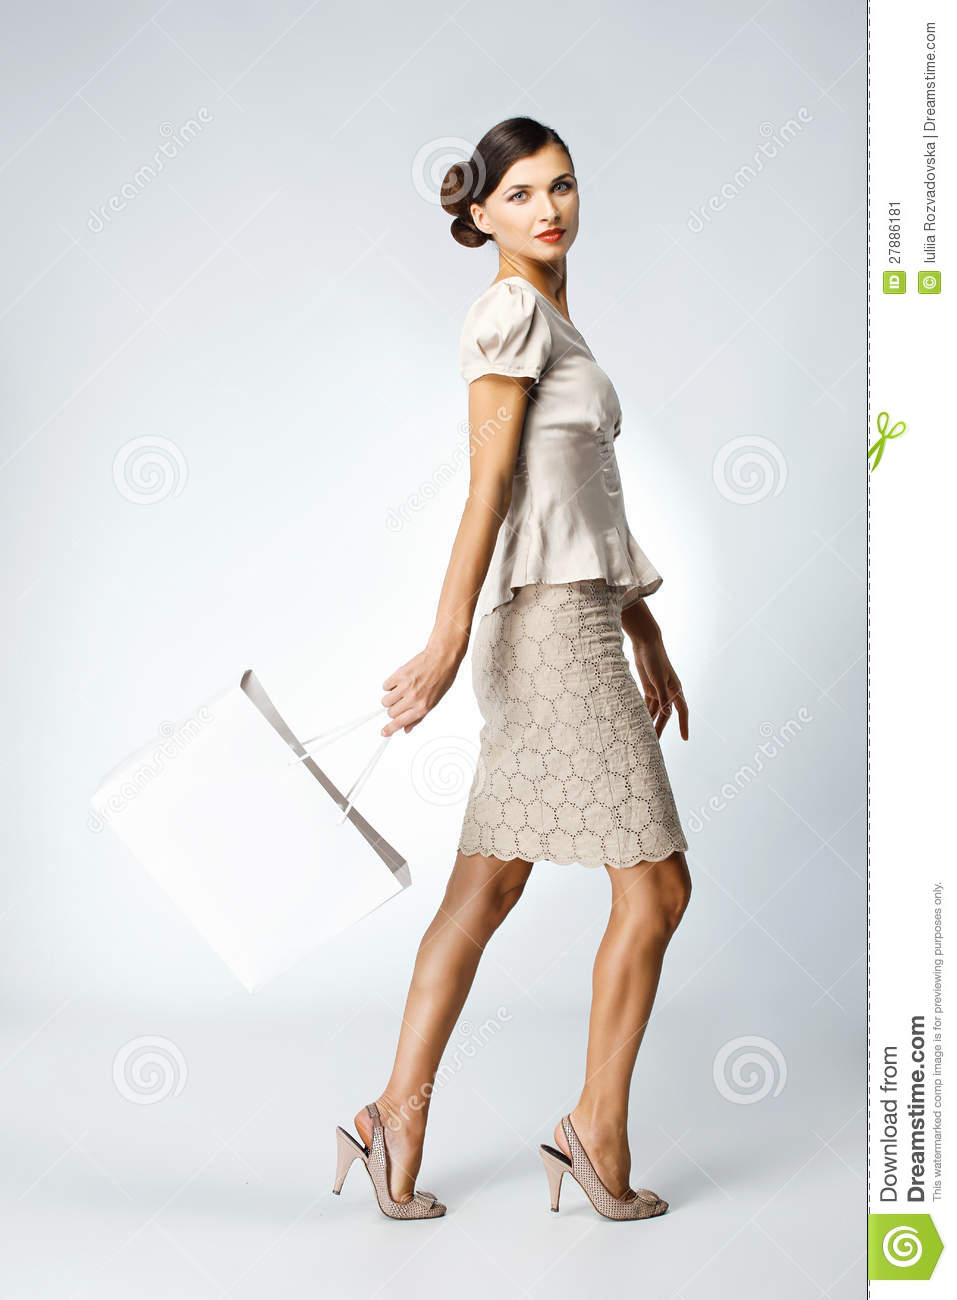 Beautiful Woman With Shopping Bag Stock Image - Image: 27886181